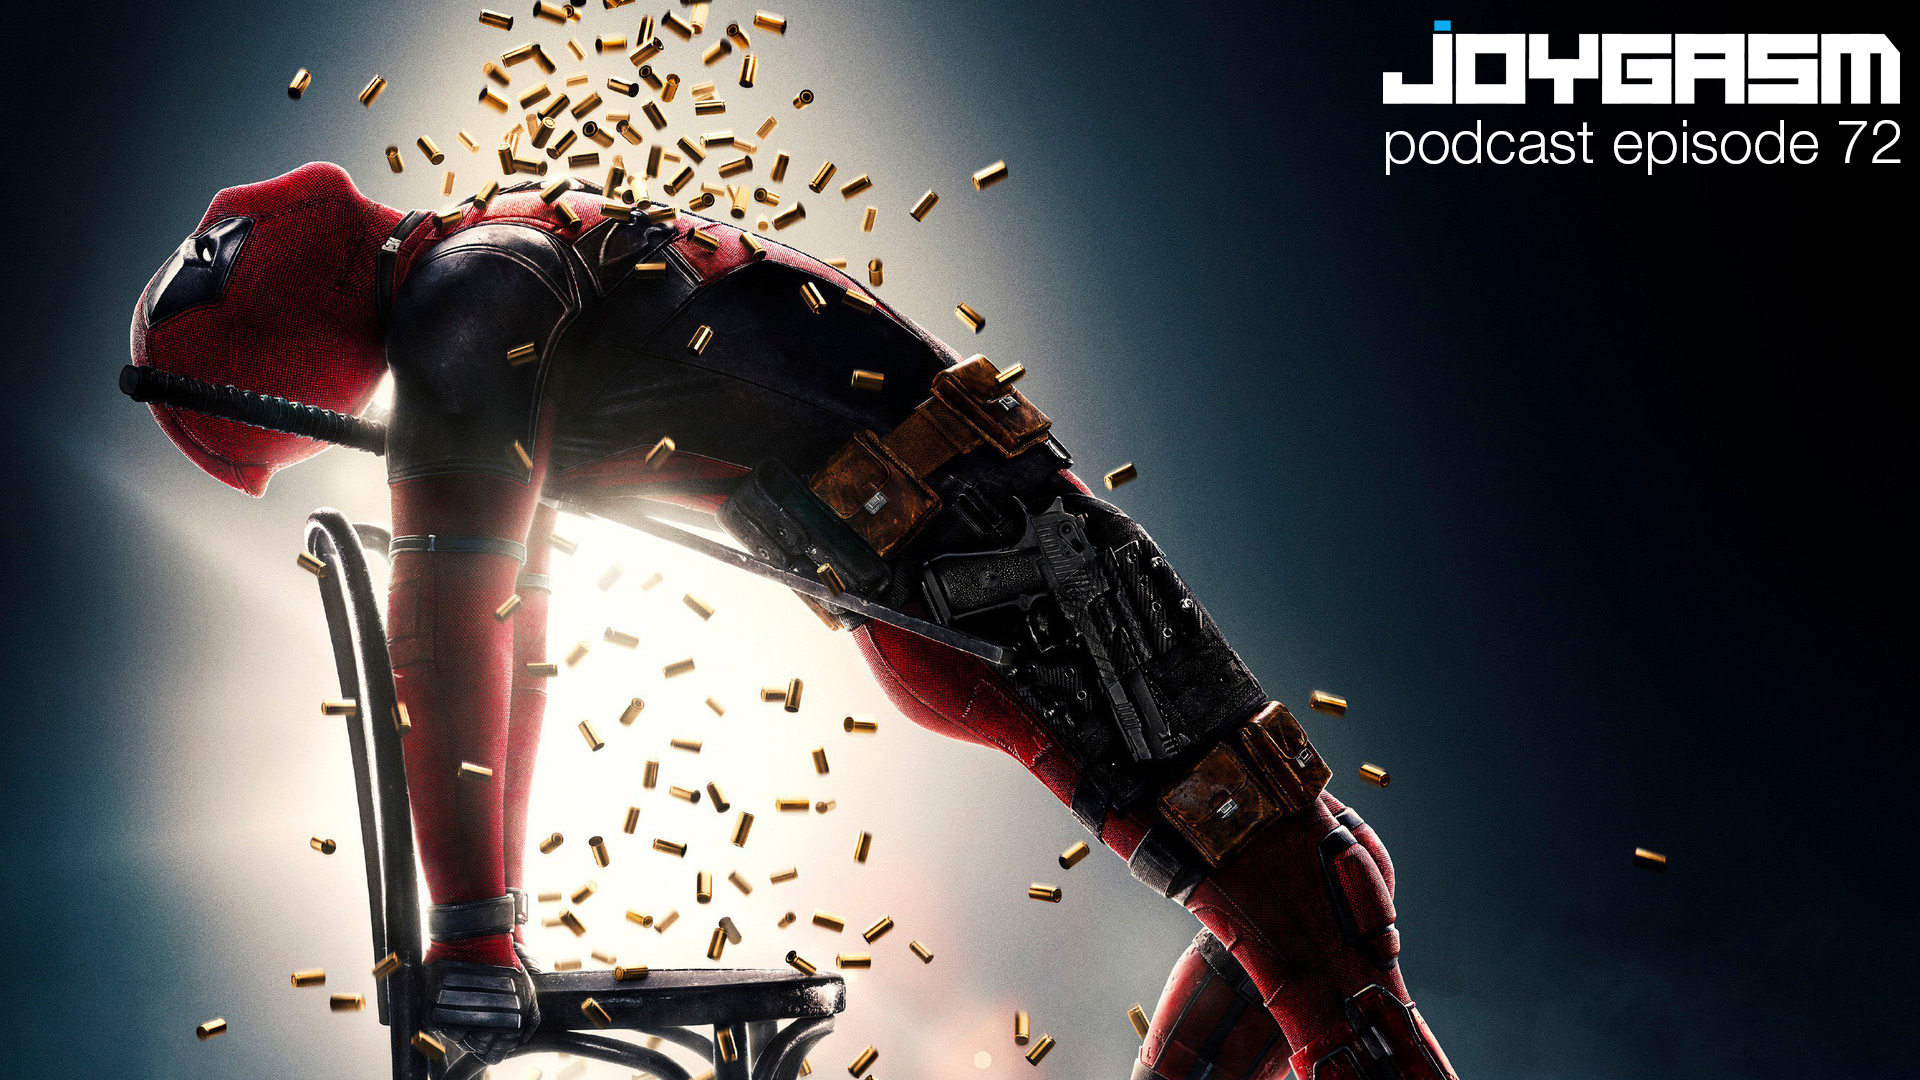 Ep. 72: Deadpool 2 Movie Review